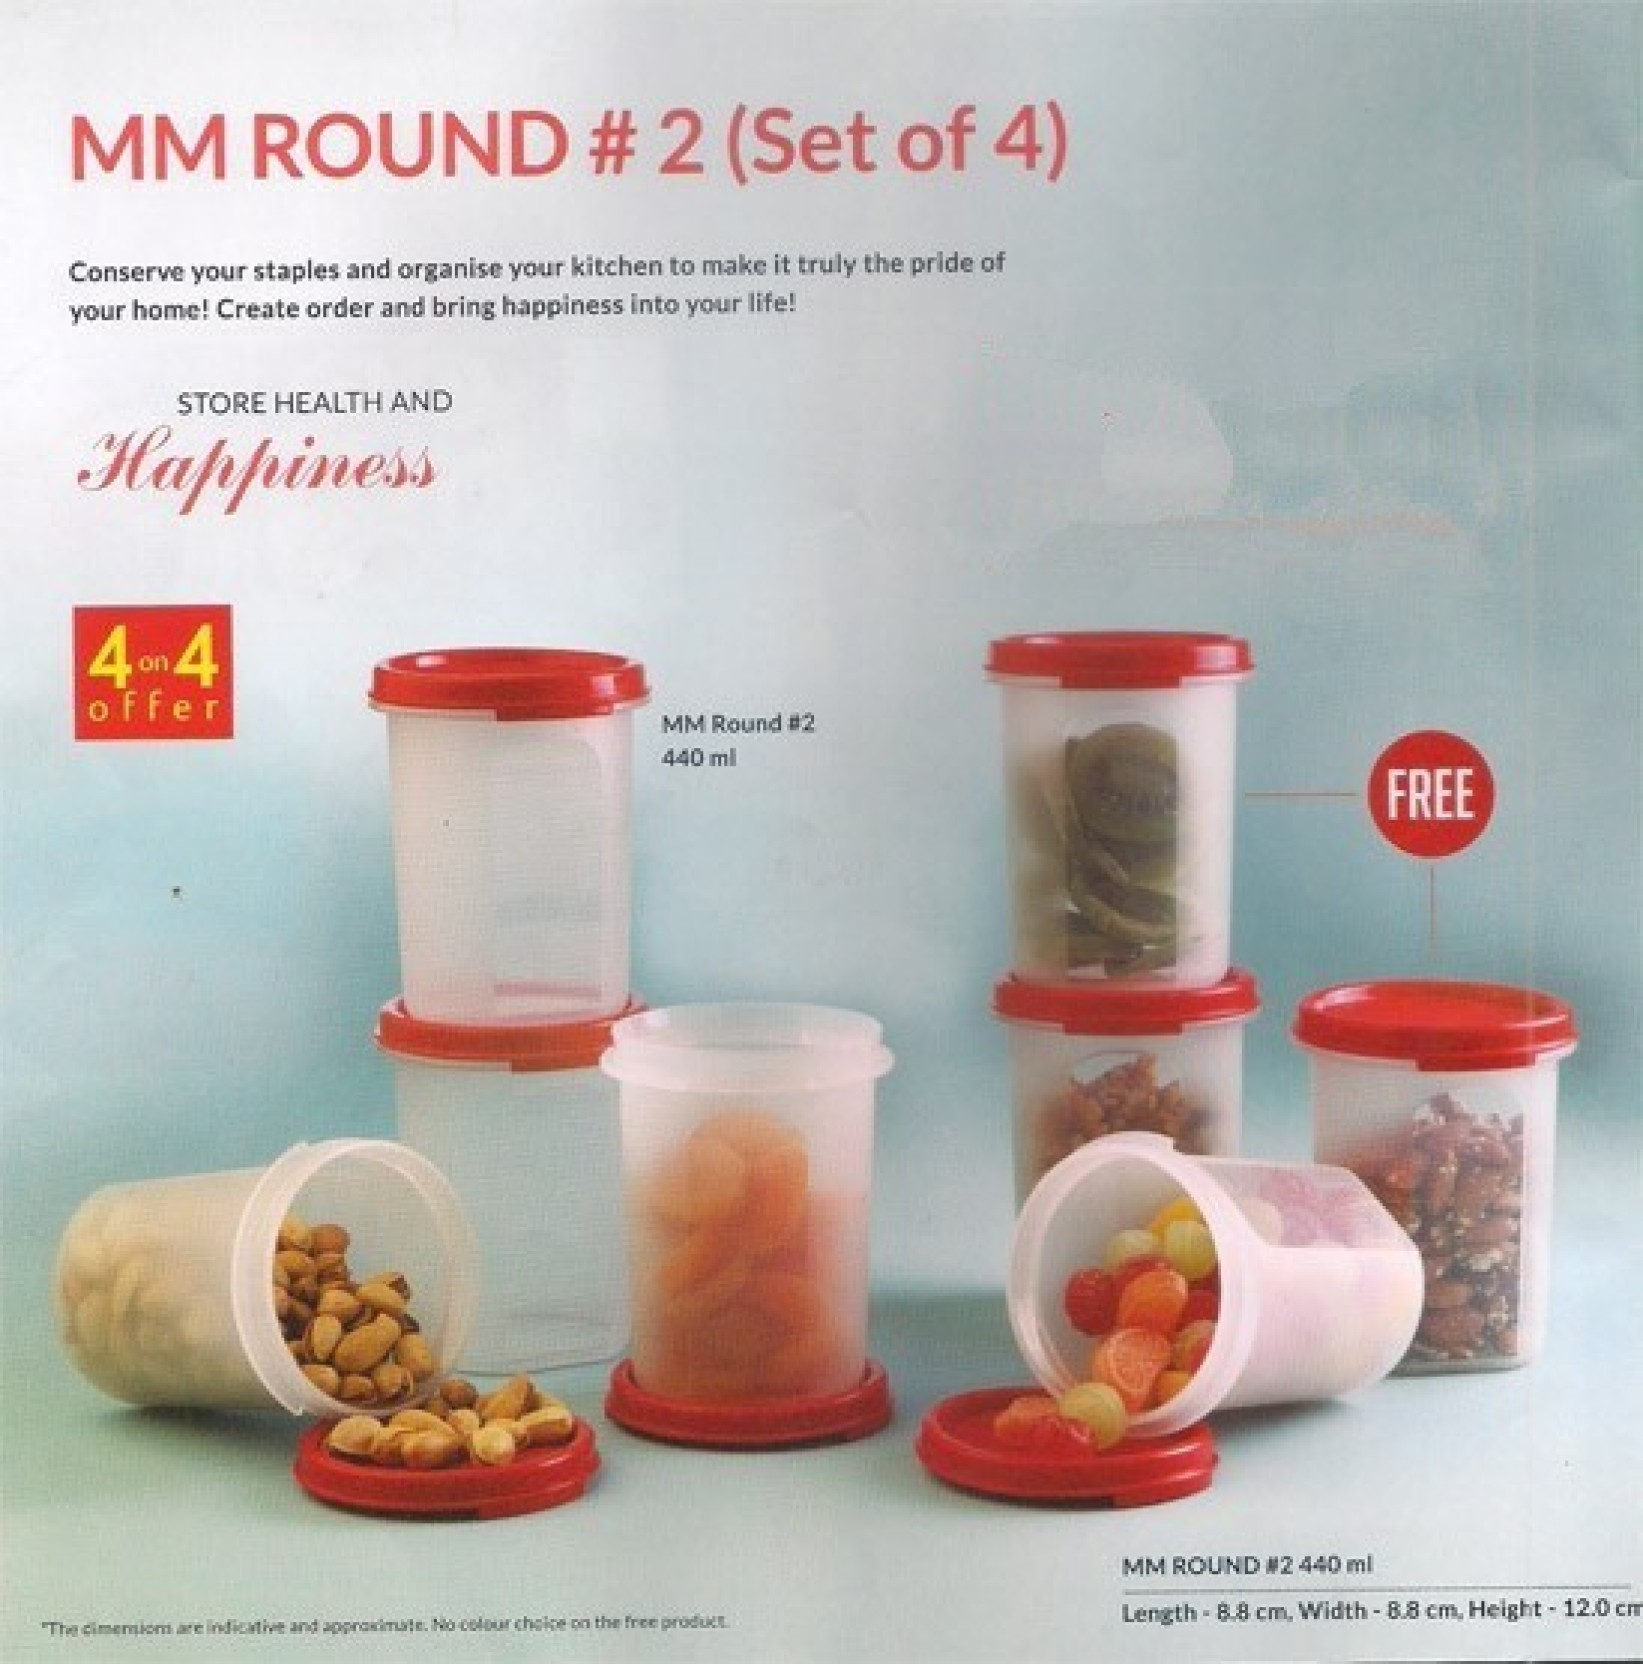 Tupperware - 440 ml Plastic Grocery Container Price in India - Buy ...